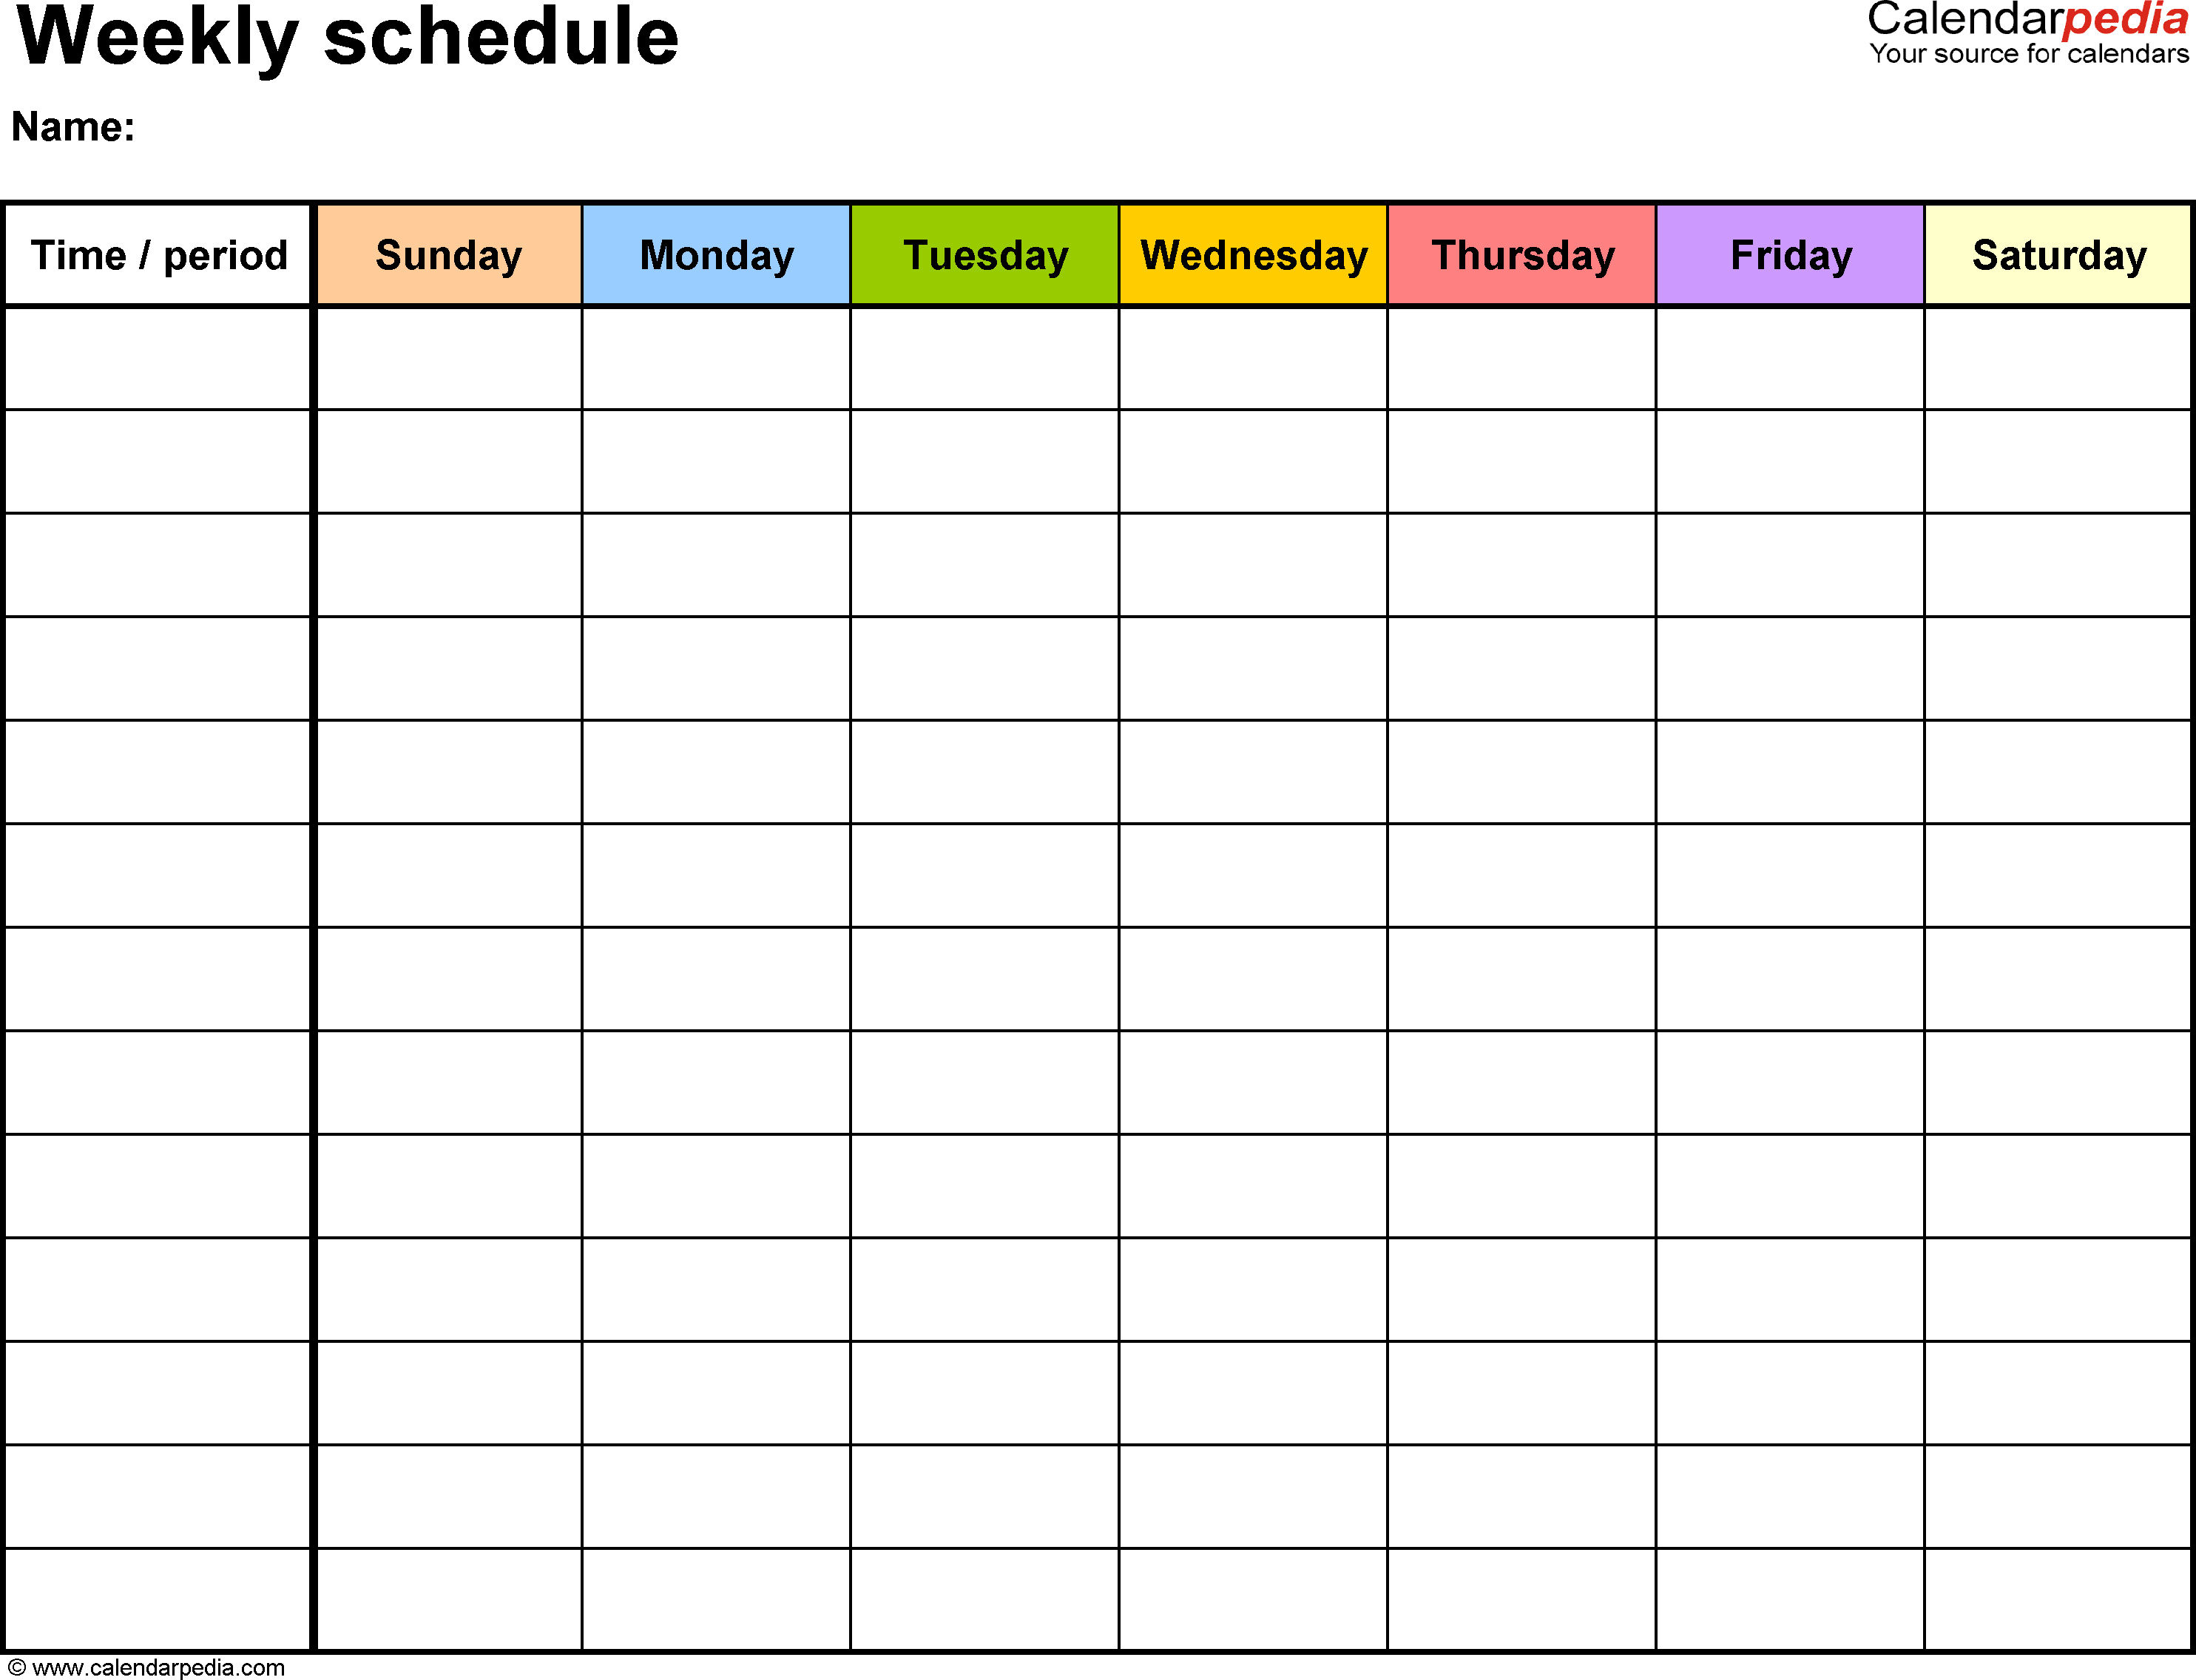 Free Weekly Schedule Templates For Excel - 18 Templates For Monthly Staff Schedule Template Free